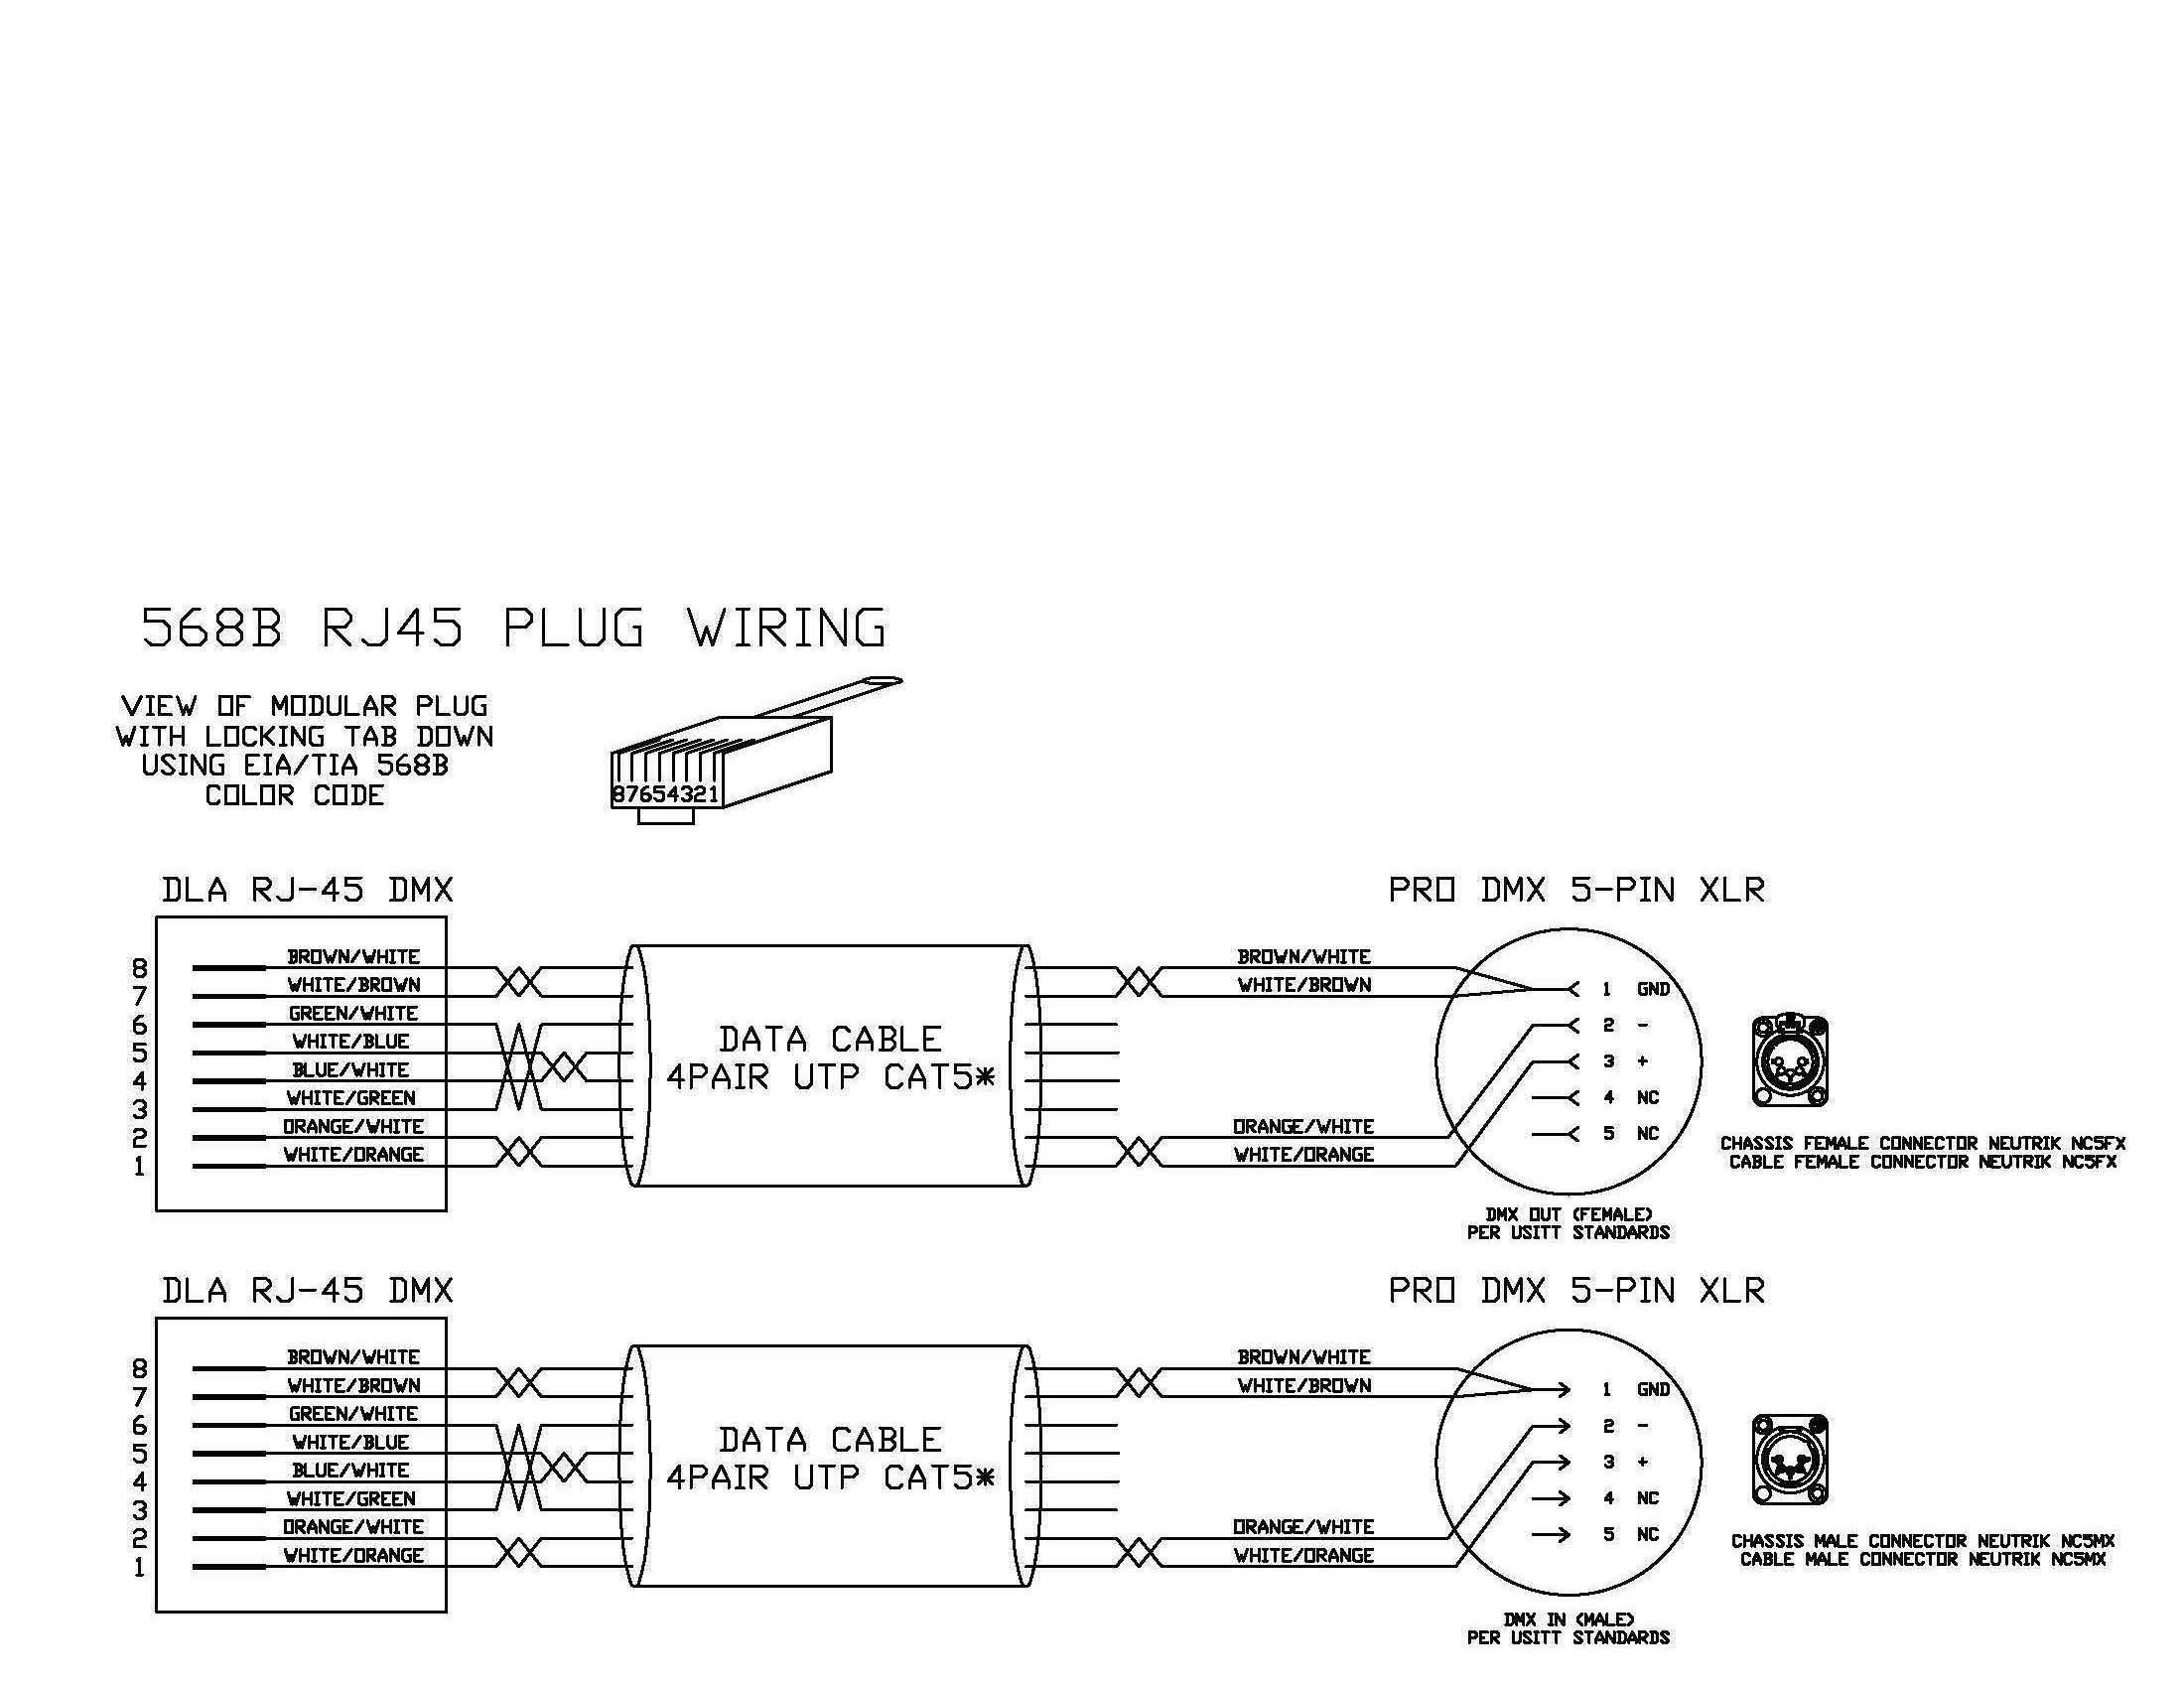 e975ddb6a839e630c21b81db05ca4fa6 xlr to rj45 wiring diagram xlr electrical wiring diagrams xlr wiring color codes at readyjetset.co